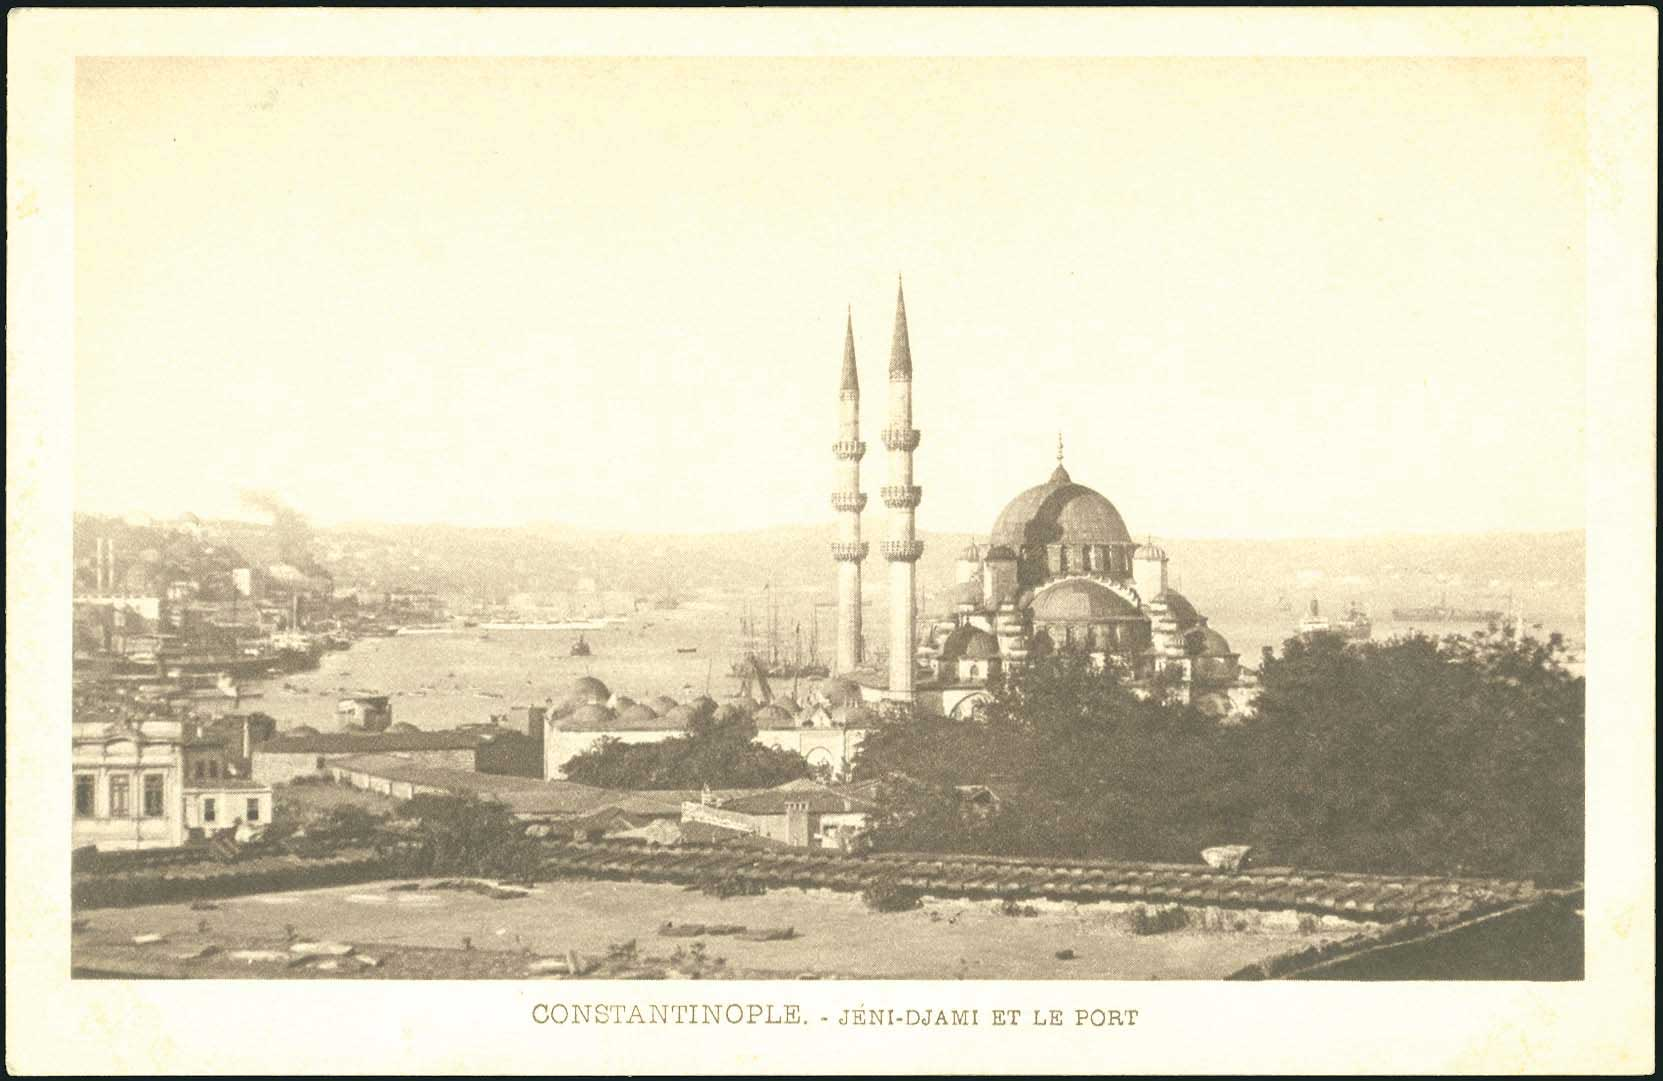 Lot 1646 - -  PICTURE POSTCARDS SMYRNE, CONSTANTINOPLE, ASIA MINOR -  A. Karamitsos Public Auction 646 General Stamp Sale